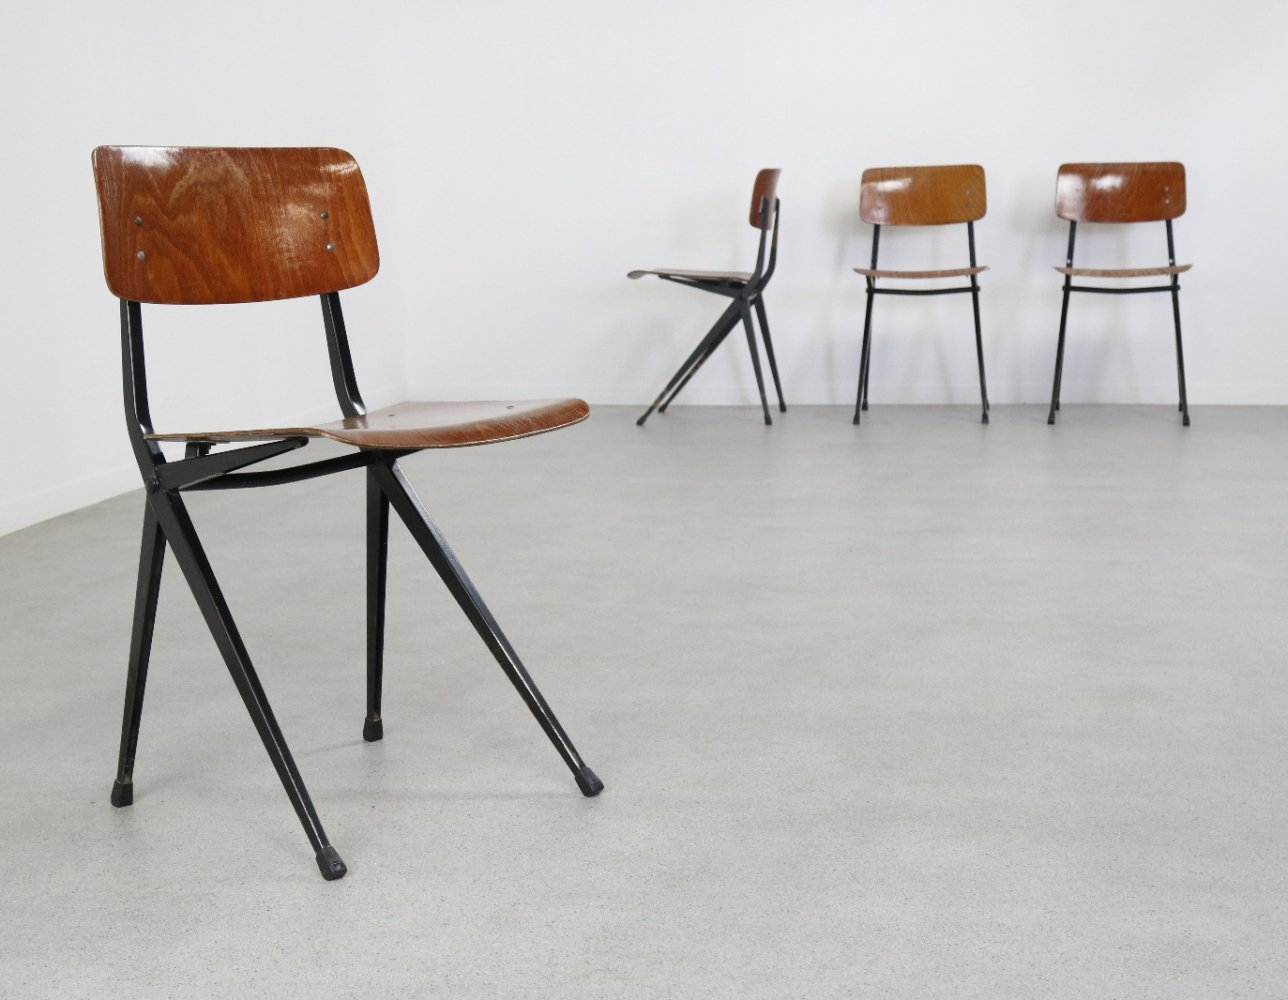 Set of 4 dining chairs by Ynske Kooistra for Marko, 1960s